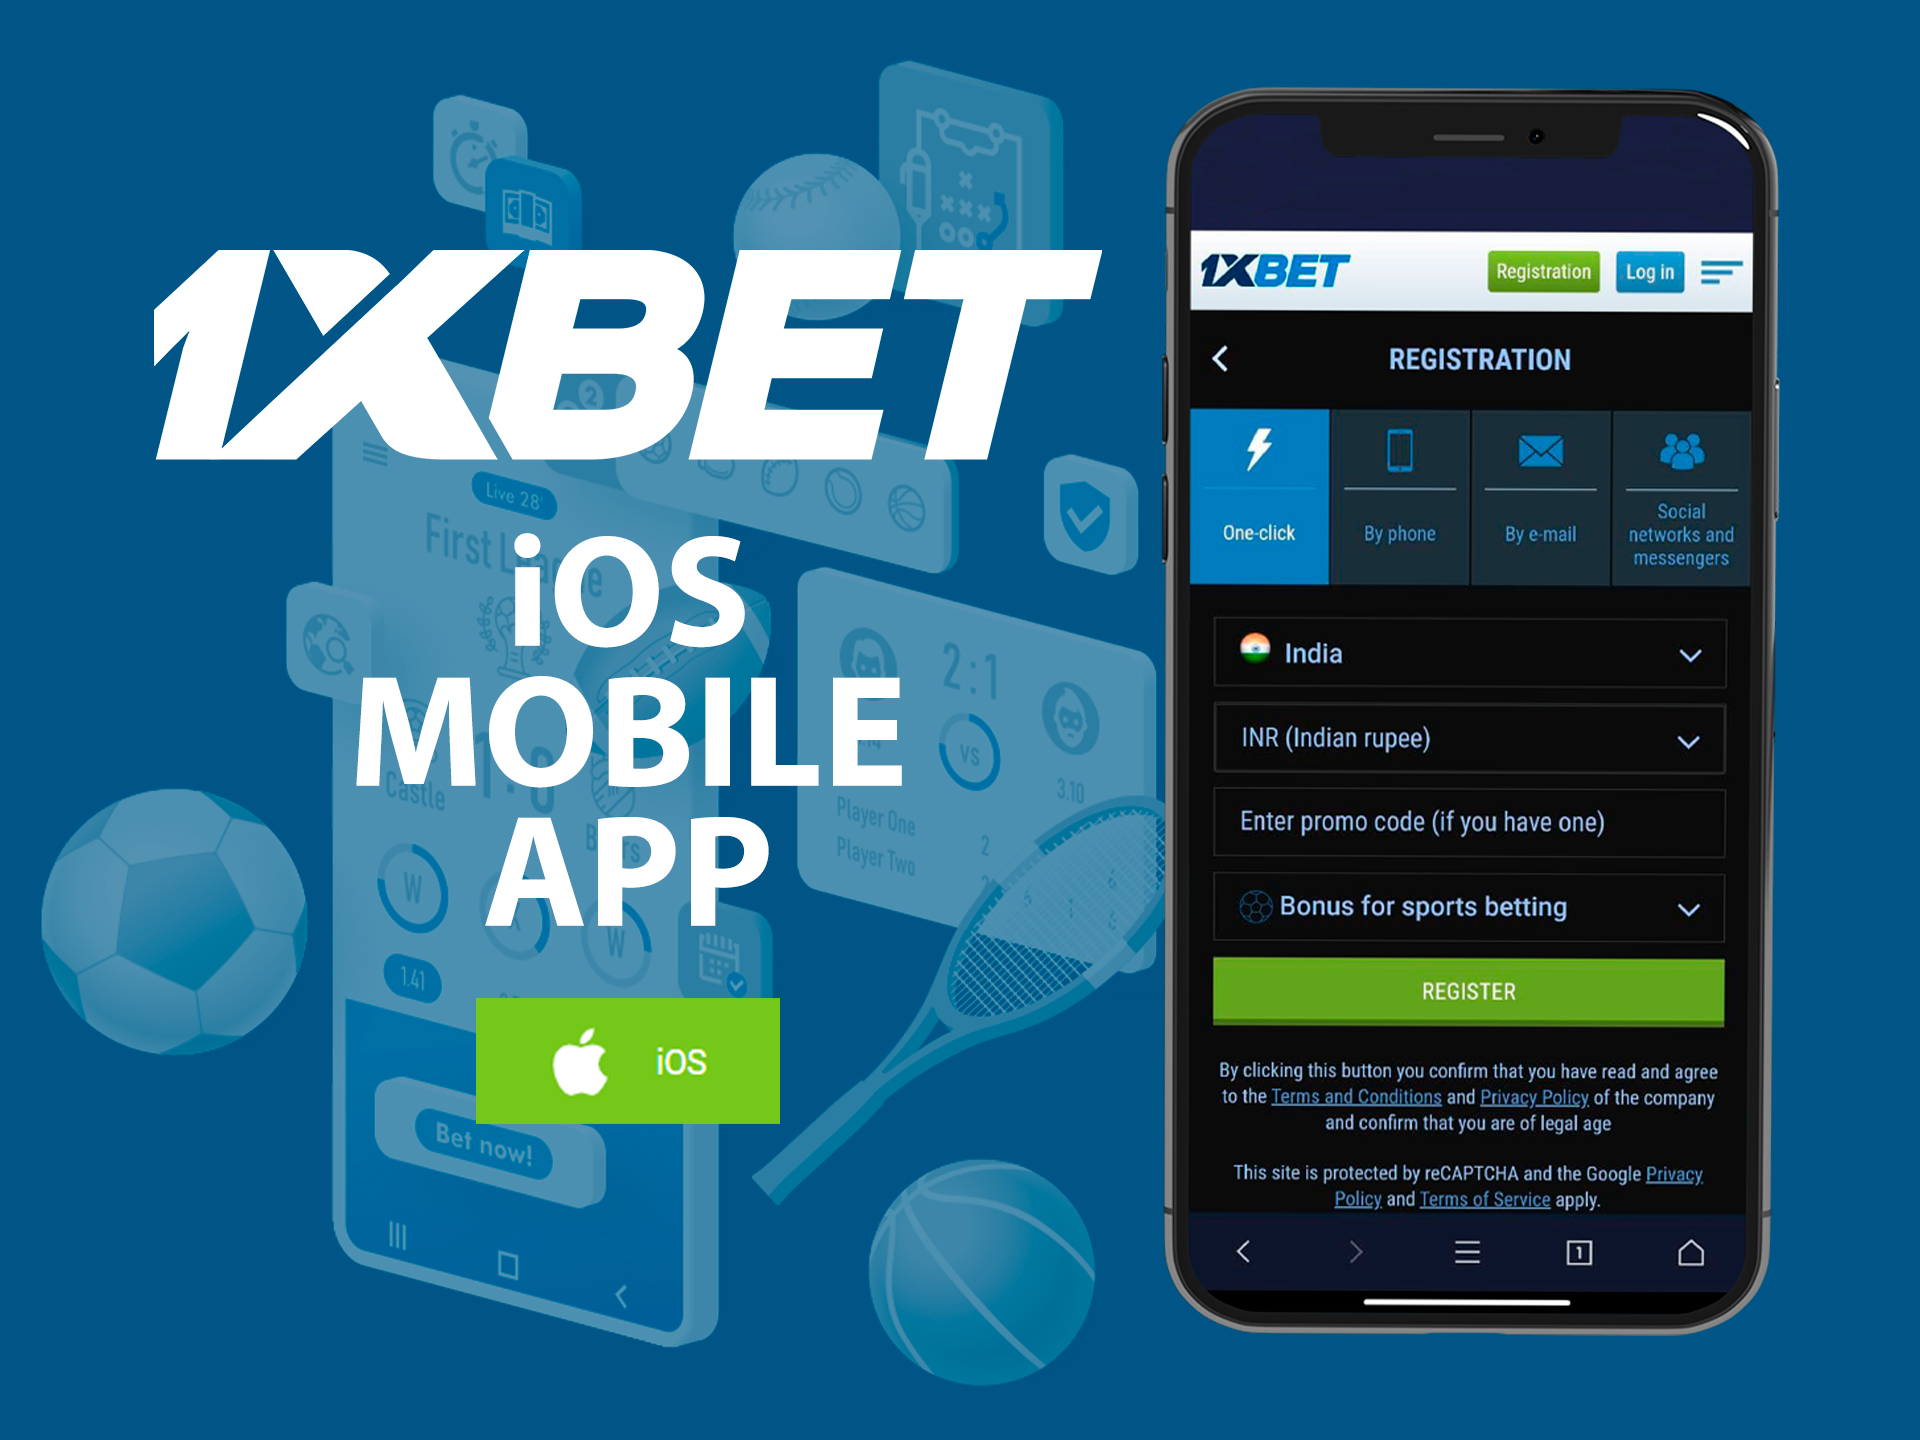 1xBet app for betting on sports on iOS devices.